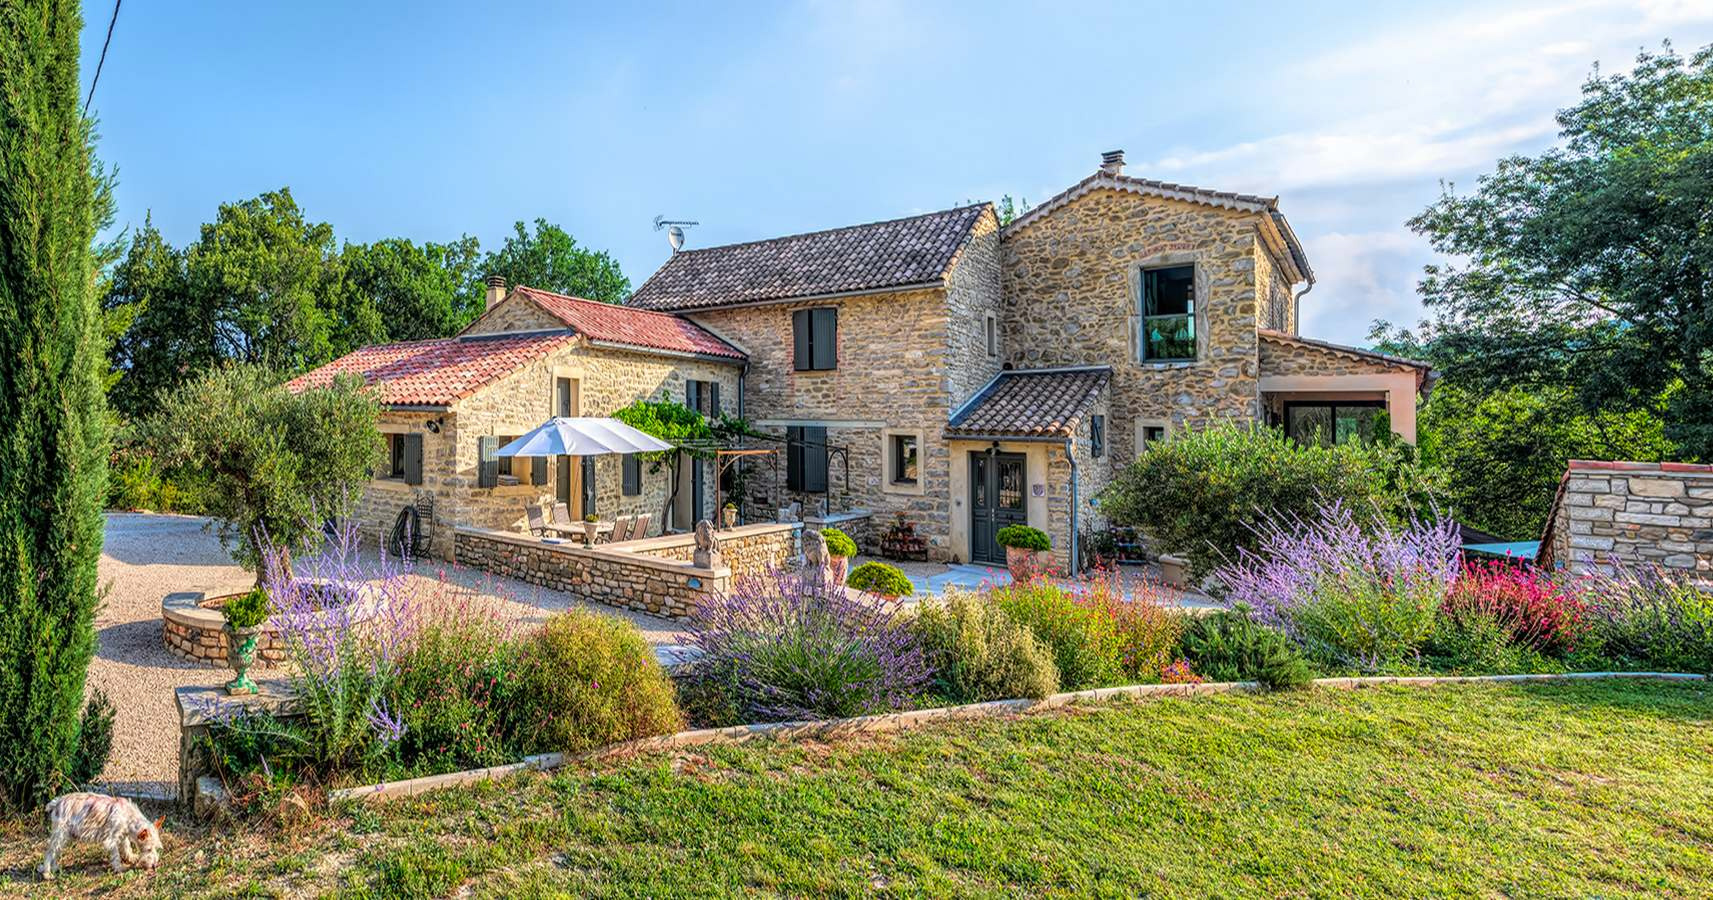 2303 : Uzès region, beautifully renovated farmhouse on 8400 m2 of land with swimming pool and guest apartment